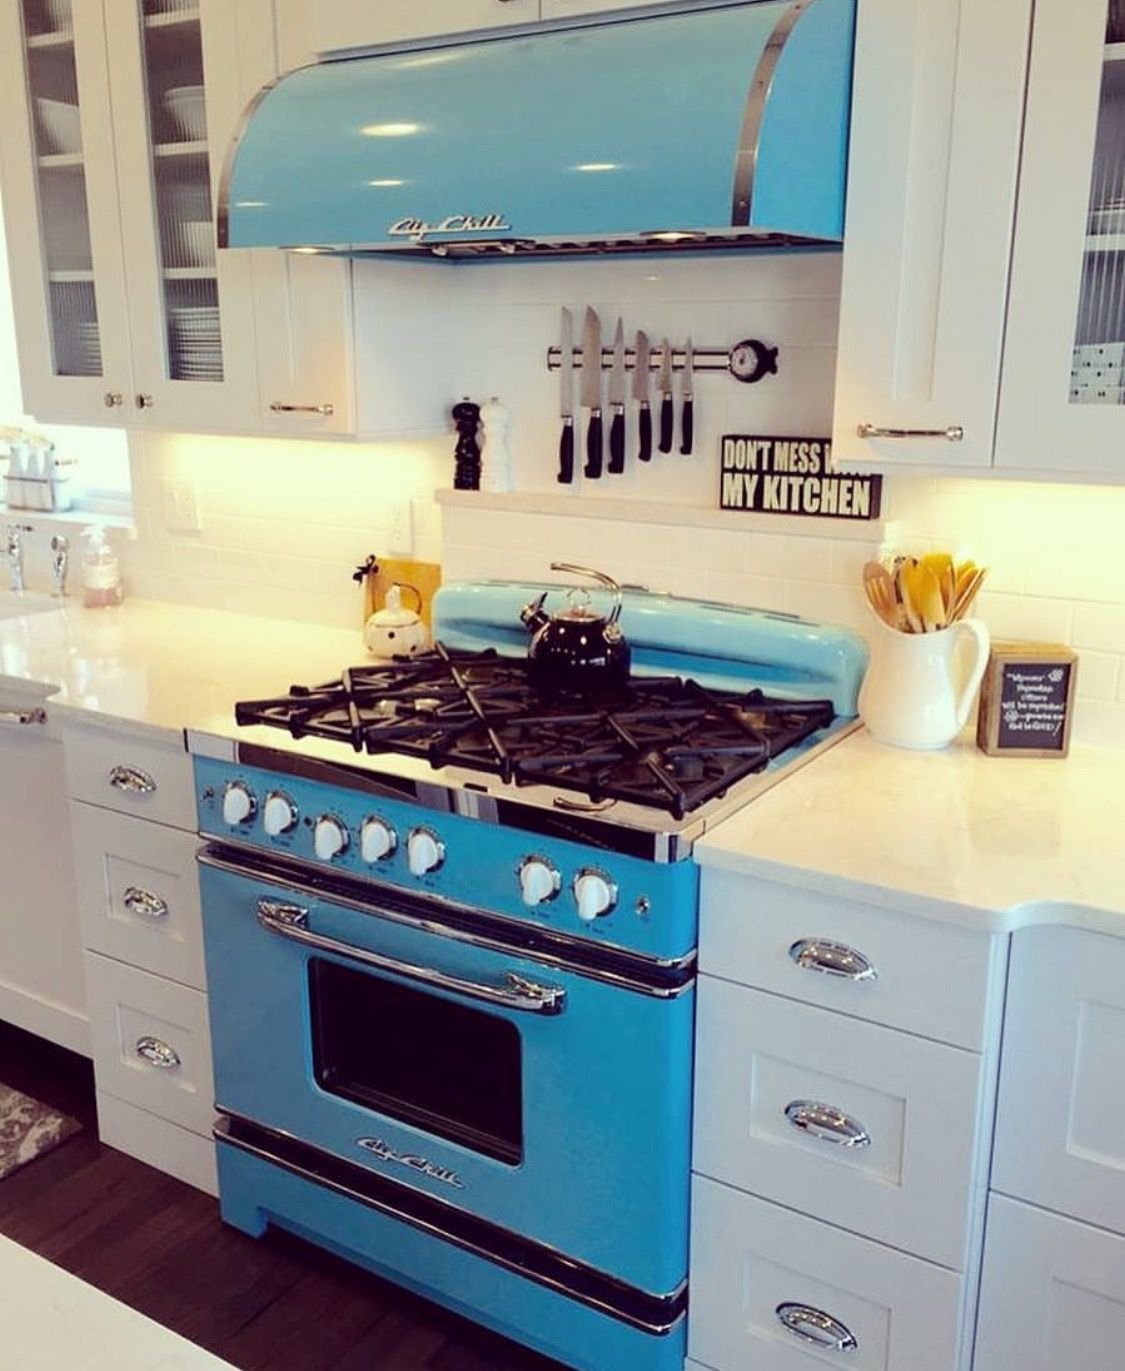 pin by sam guthrie on aquas teals turquoise retro kitchen cool kitchen appliances rustic on kitchen appliances id=31007